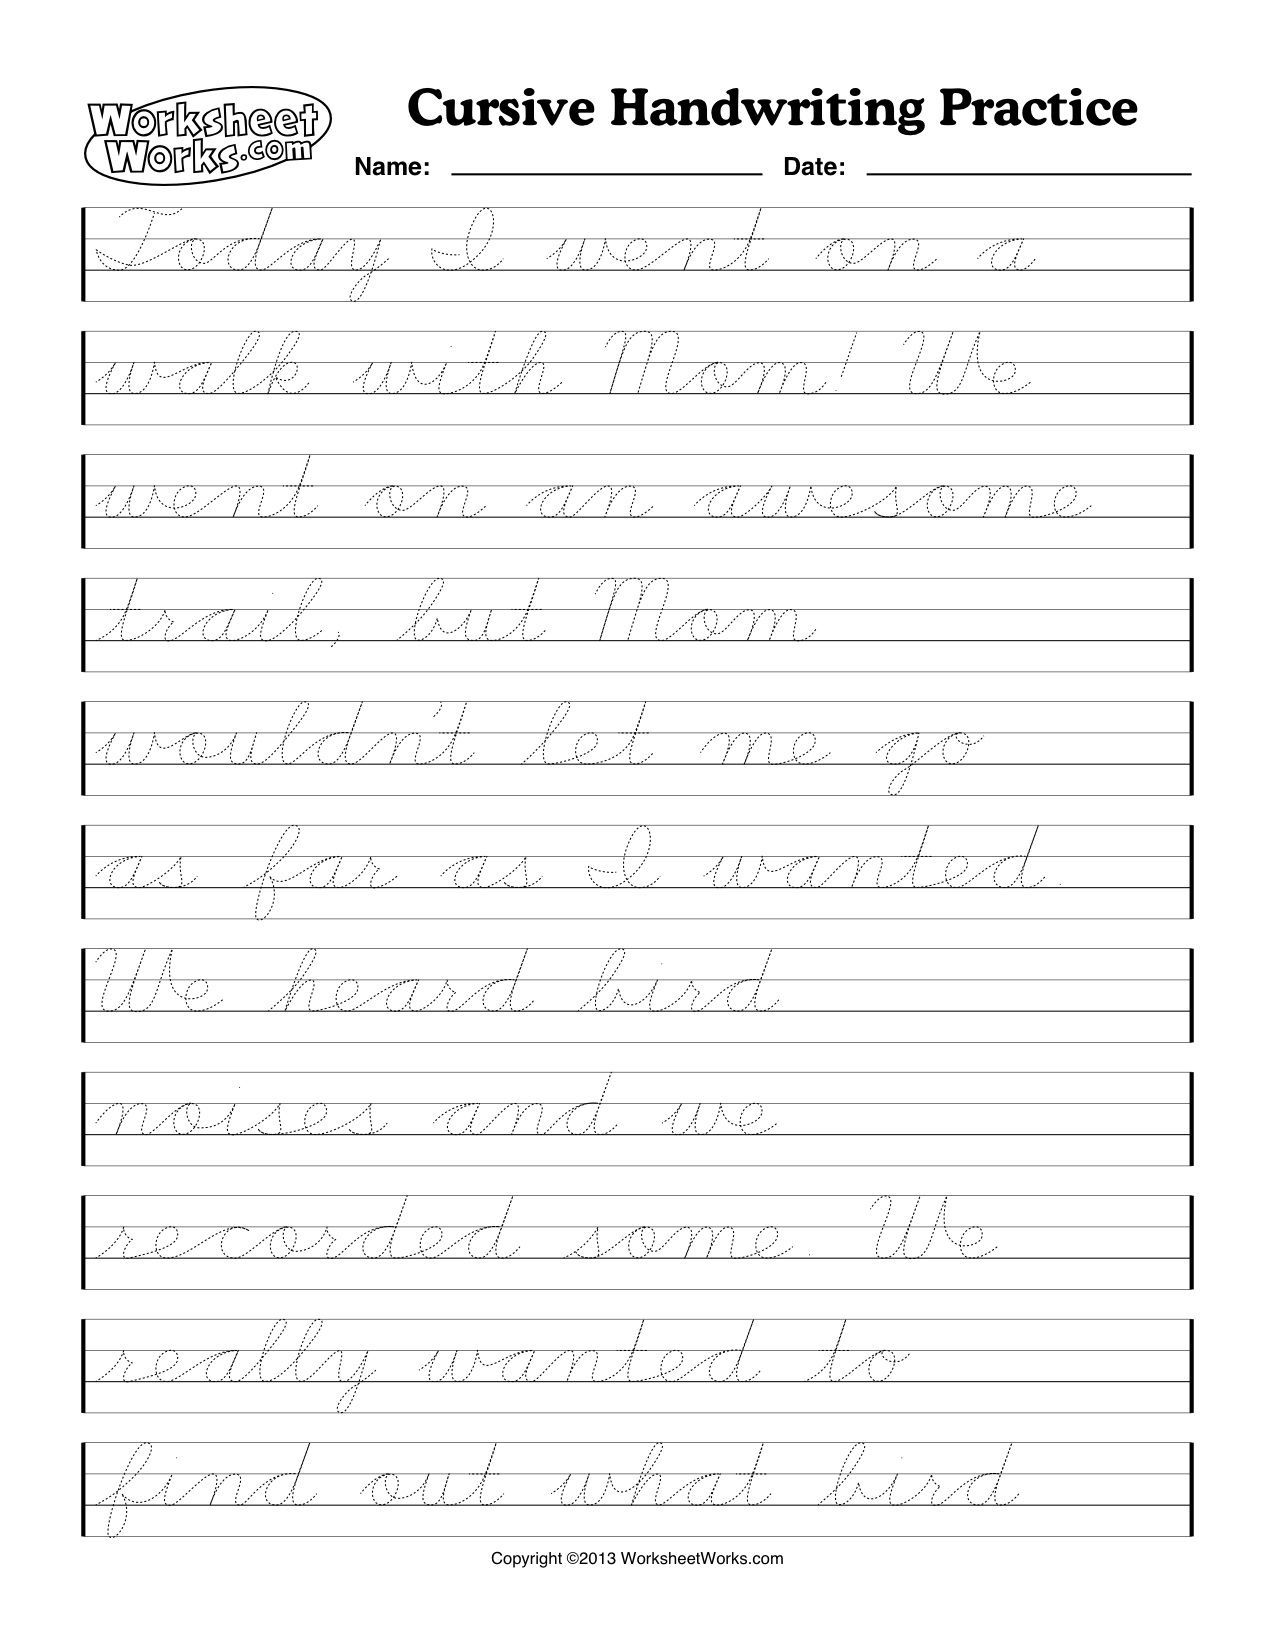 English Handwriting Practice Sheets - Koran.sticken.co | Free Printable Script Writing Worksheets